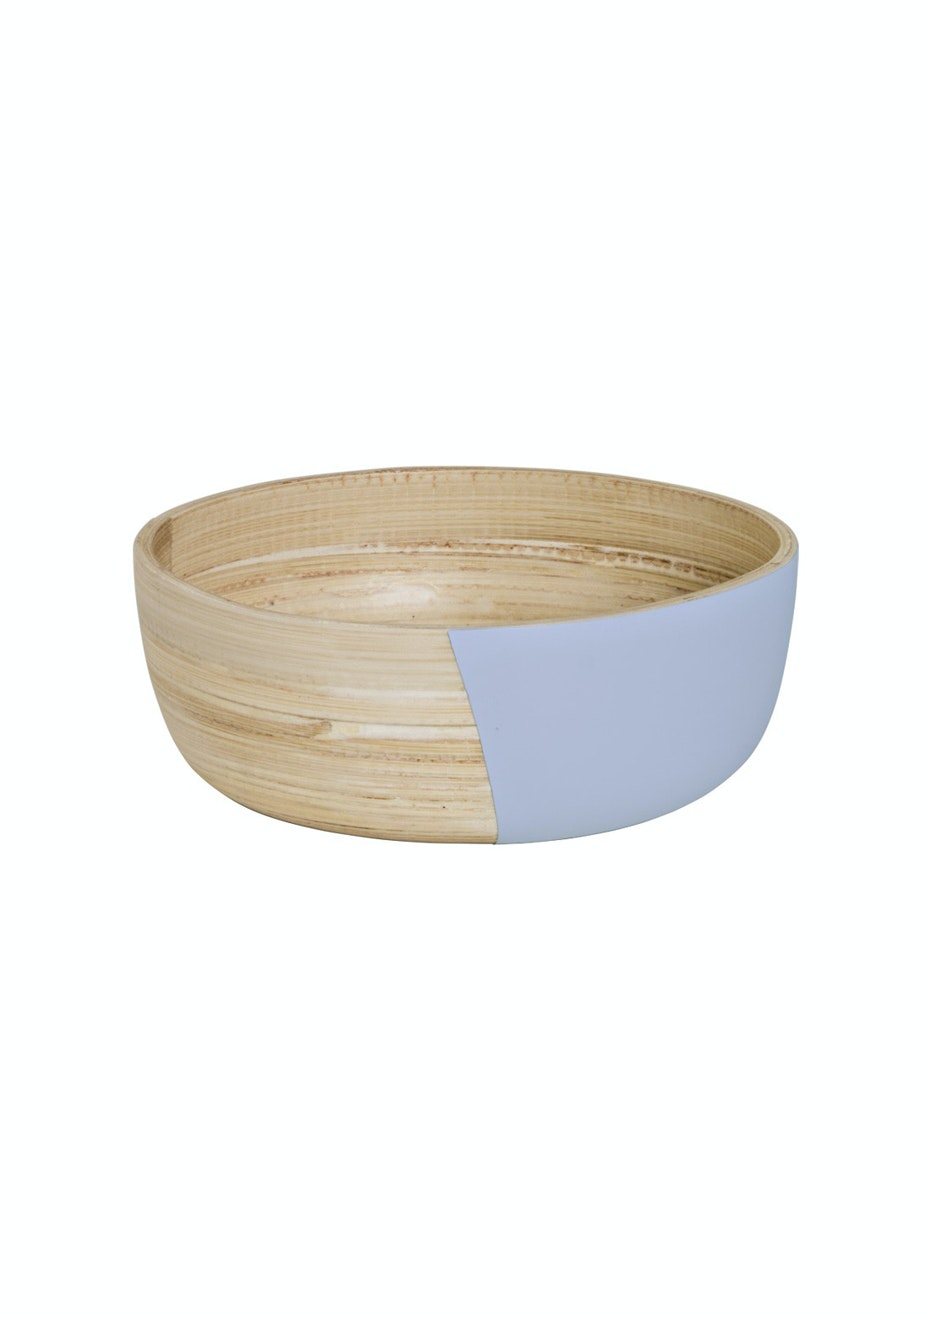 Jason - Lacquered Wooden Bowl Small - Lilac